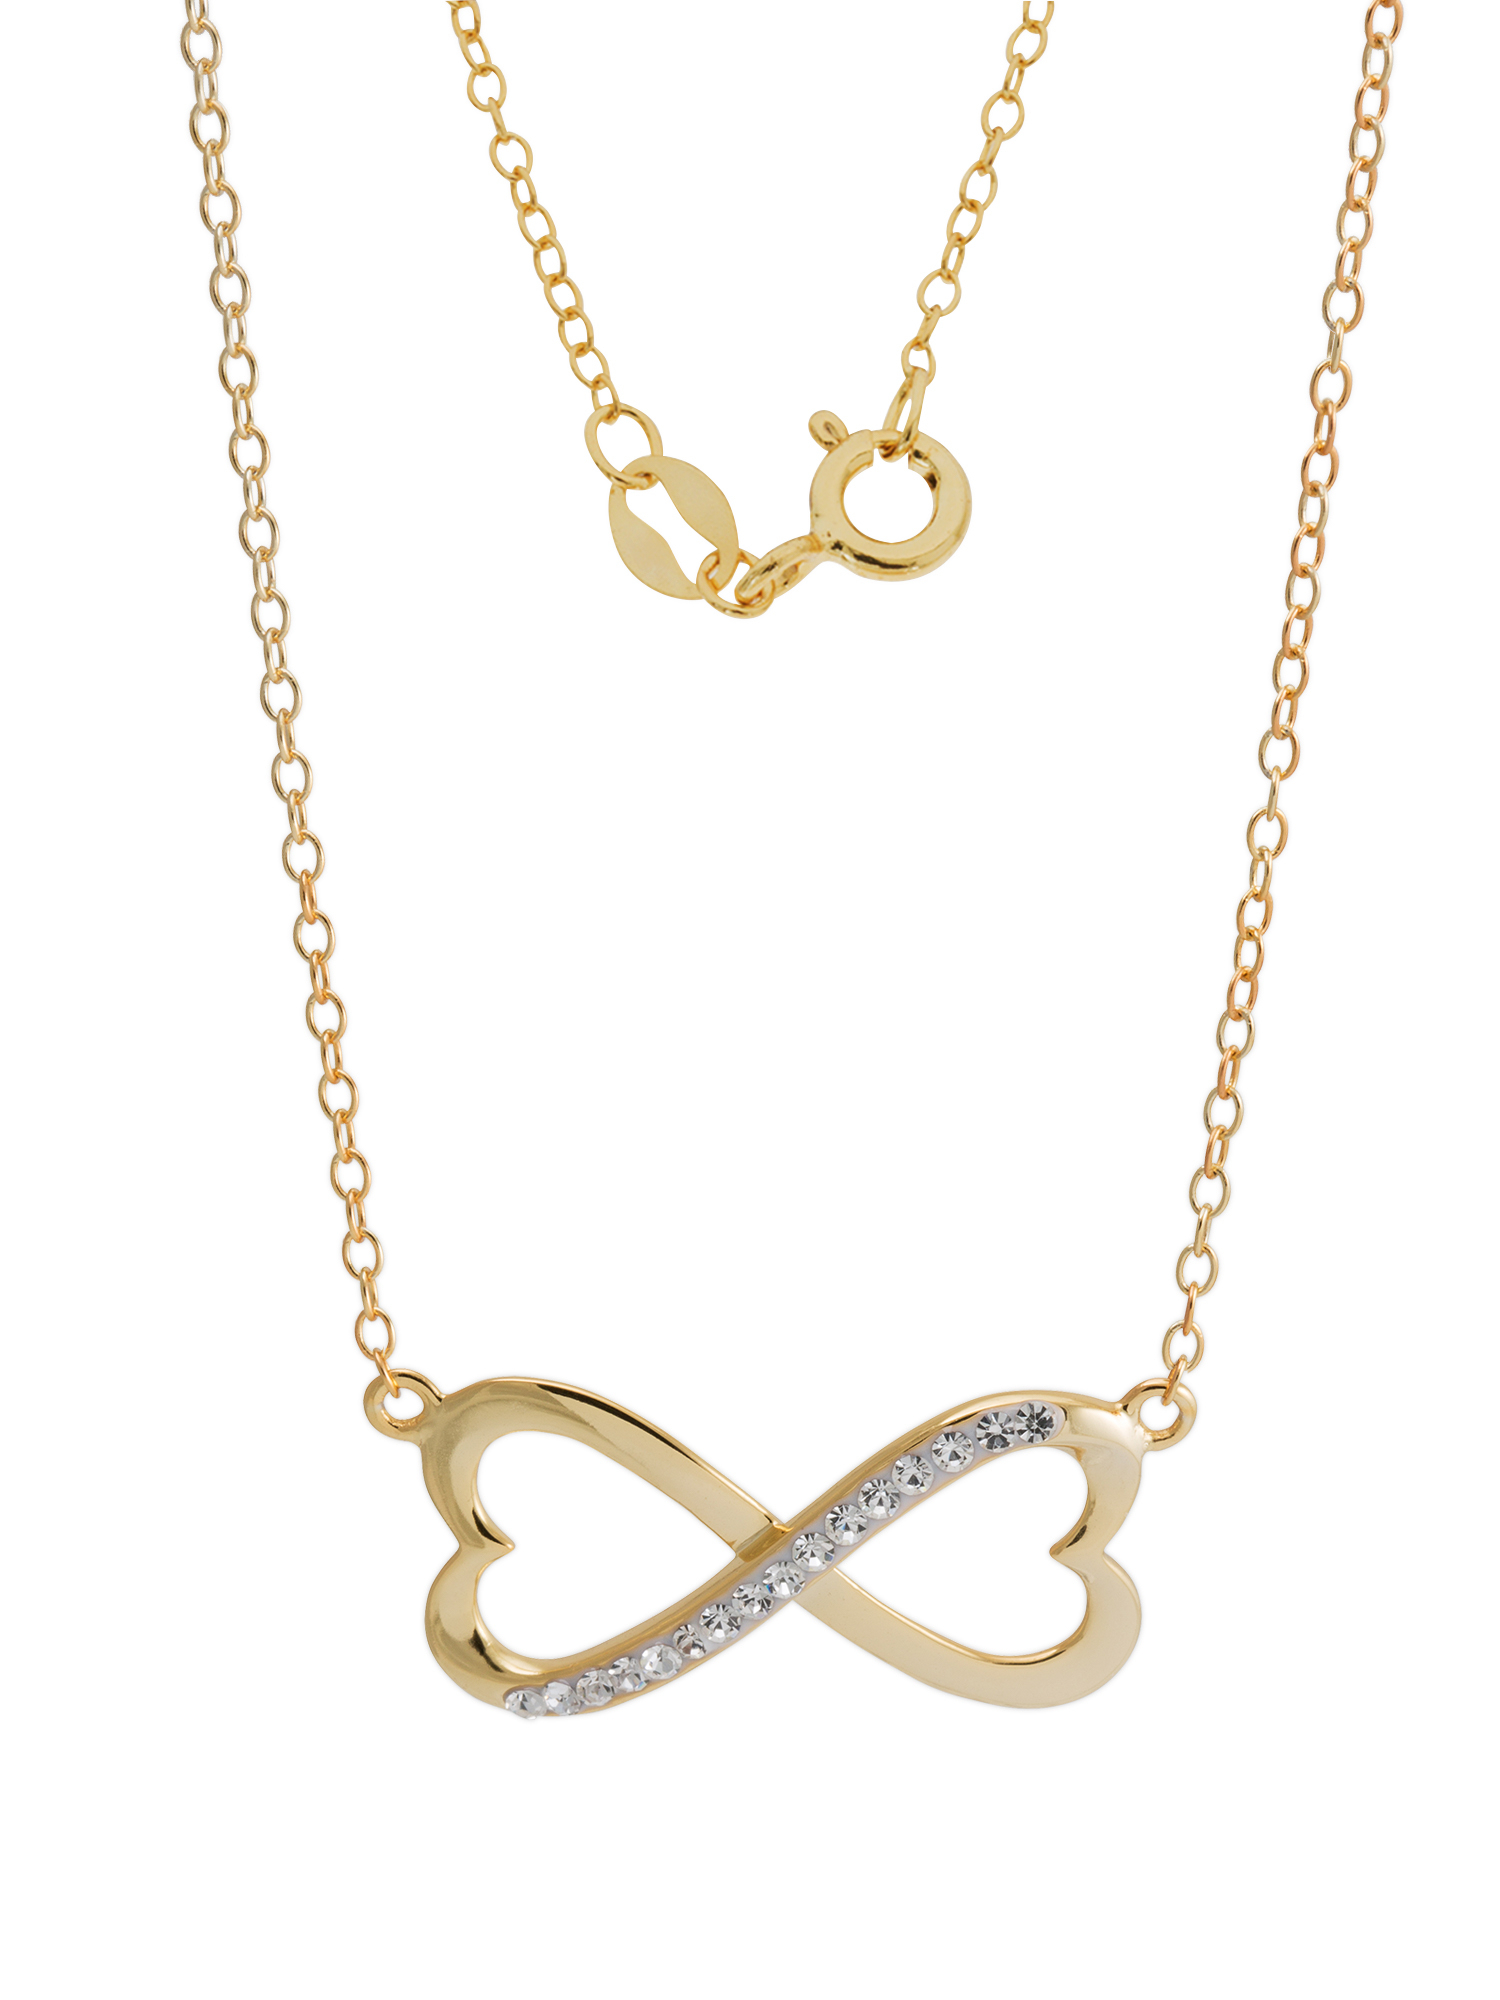 18Kt Gold Over Silver Clear Crystal Infinity/heart Necklace Pertaining To 2019 Sparkling Infinity Locket Element Necklaces (Gallery 9 of 25)